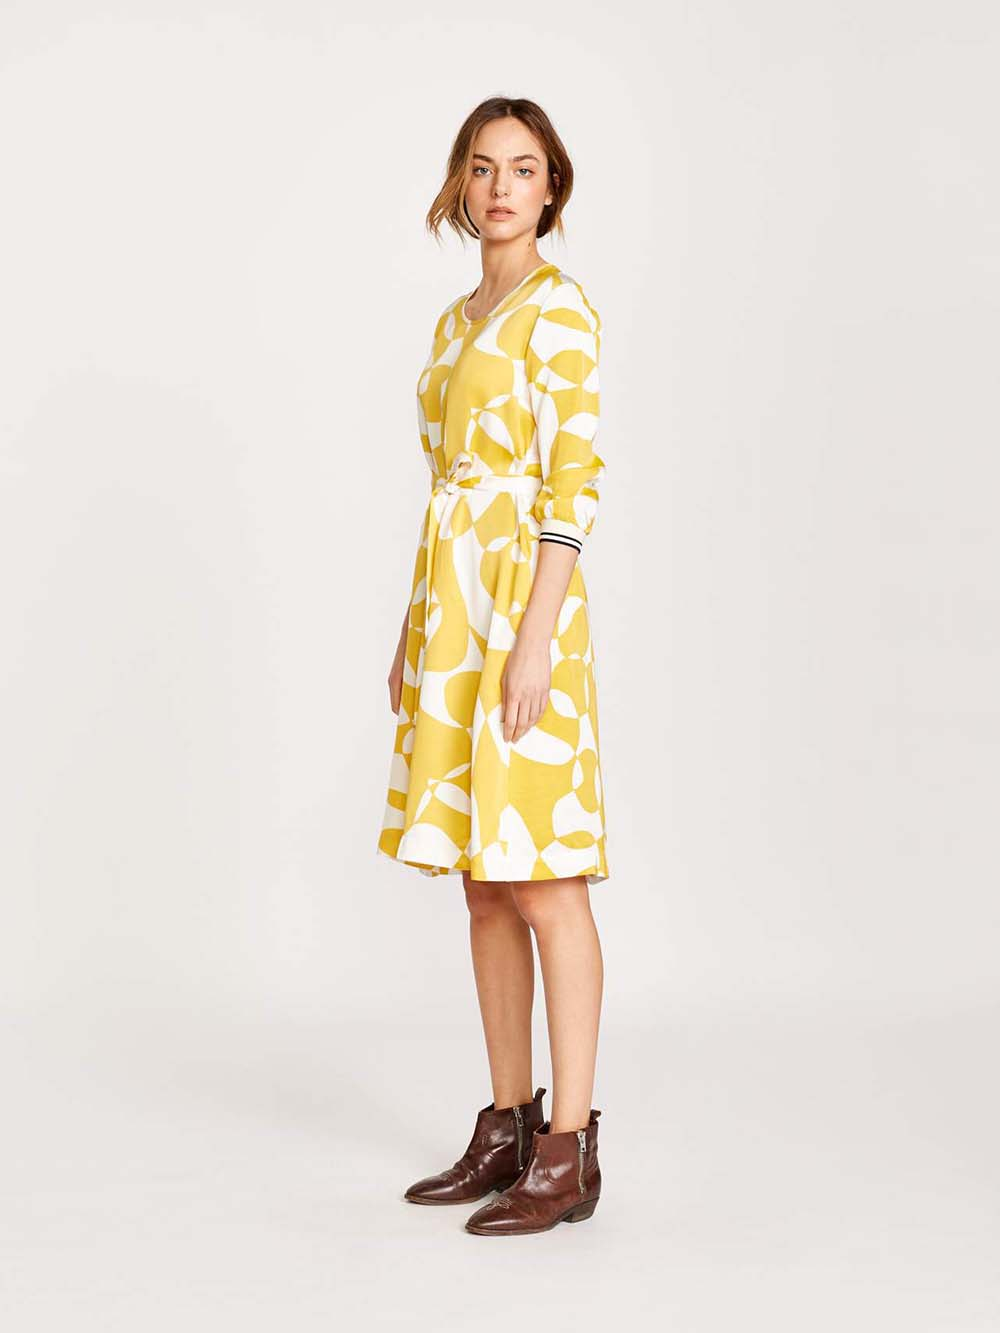 bellerose sao dress in c.1